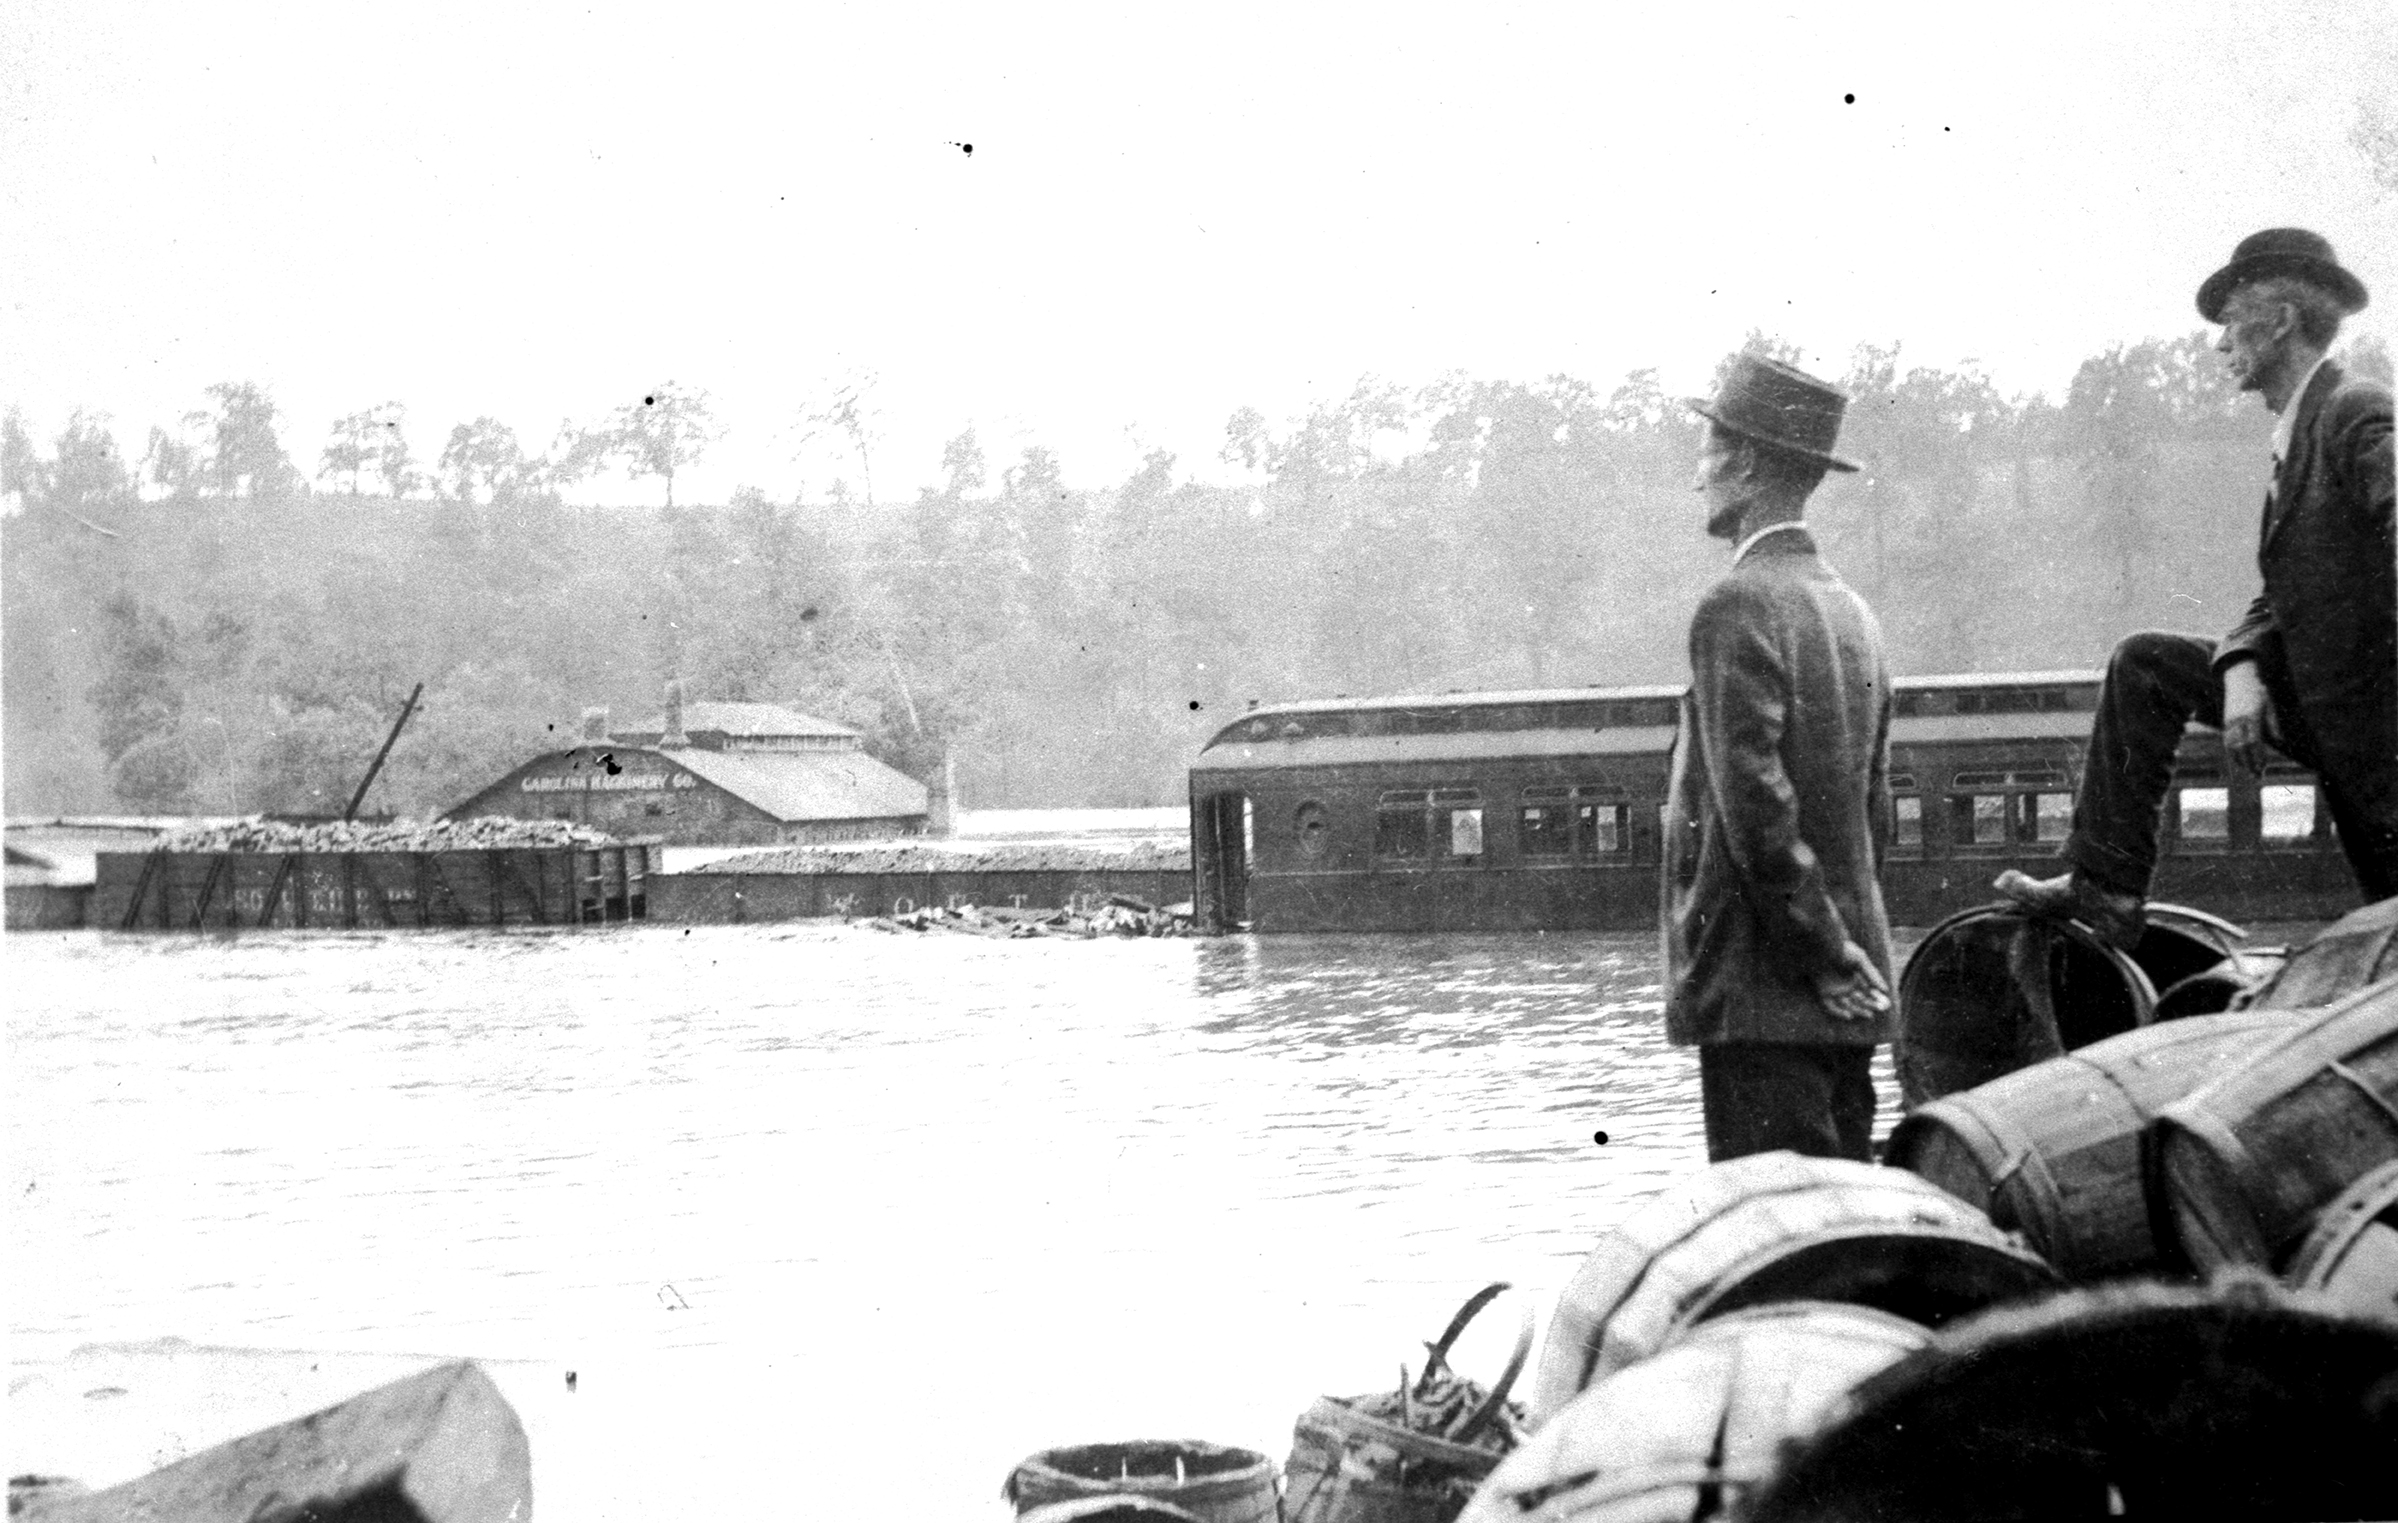 All the people could do after they fled to safety was watch their homes and towns wash away.Photograph courtesy of the state archives of north carolina